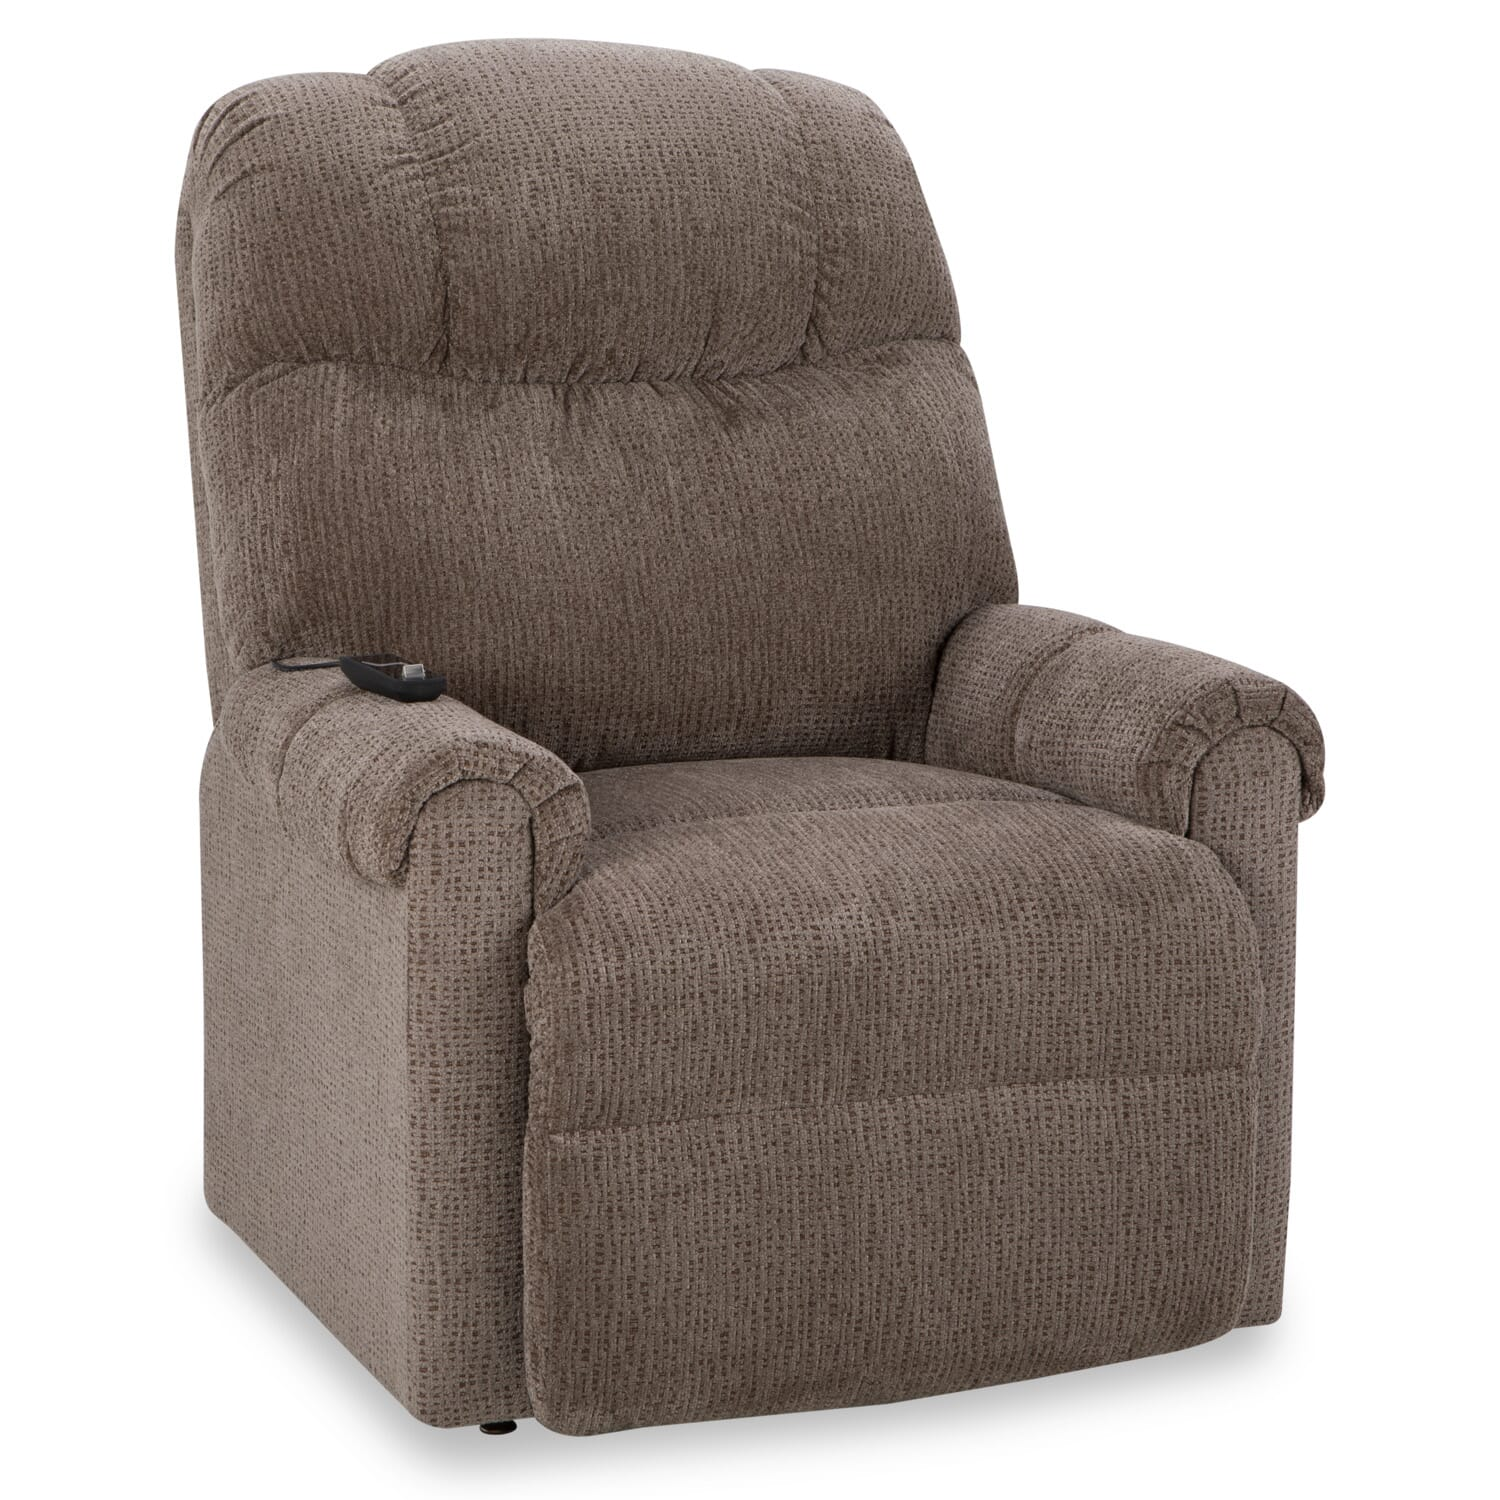 Dodson Lift Chair Lift Chairs Sale Wg Amp R Furniture